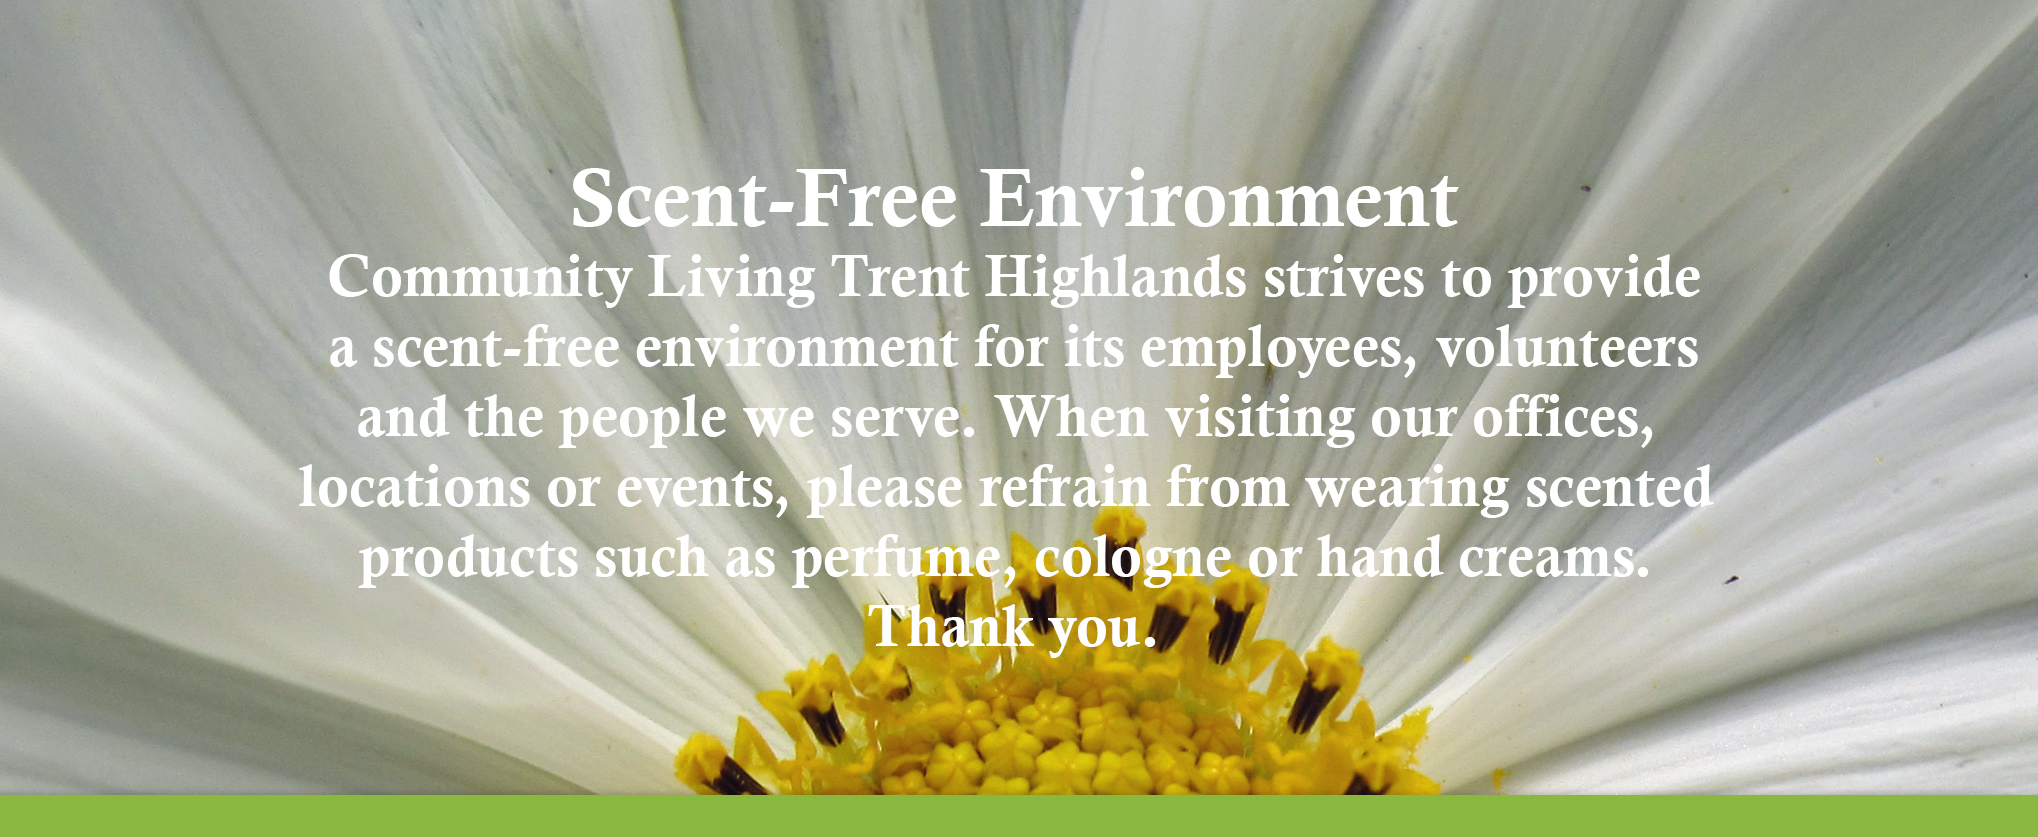 Scent-Free Environment